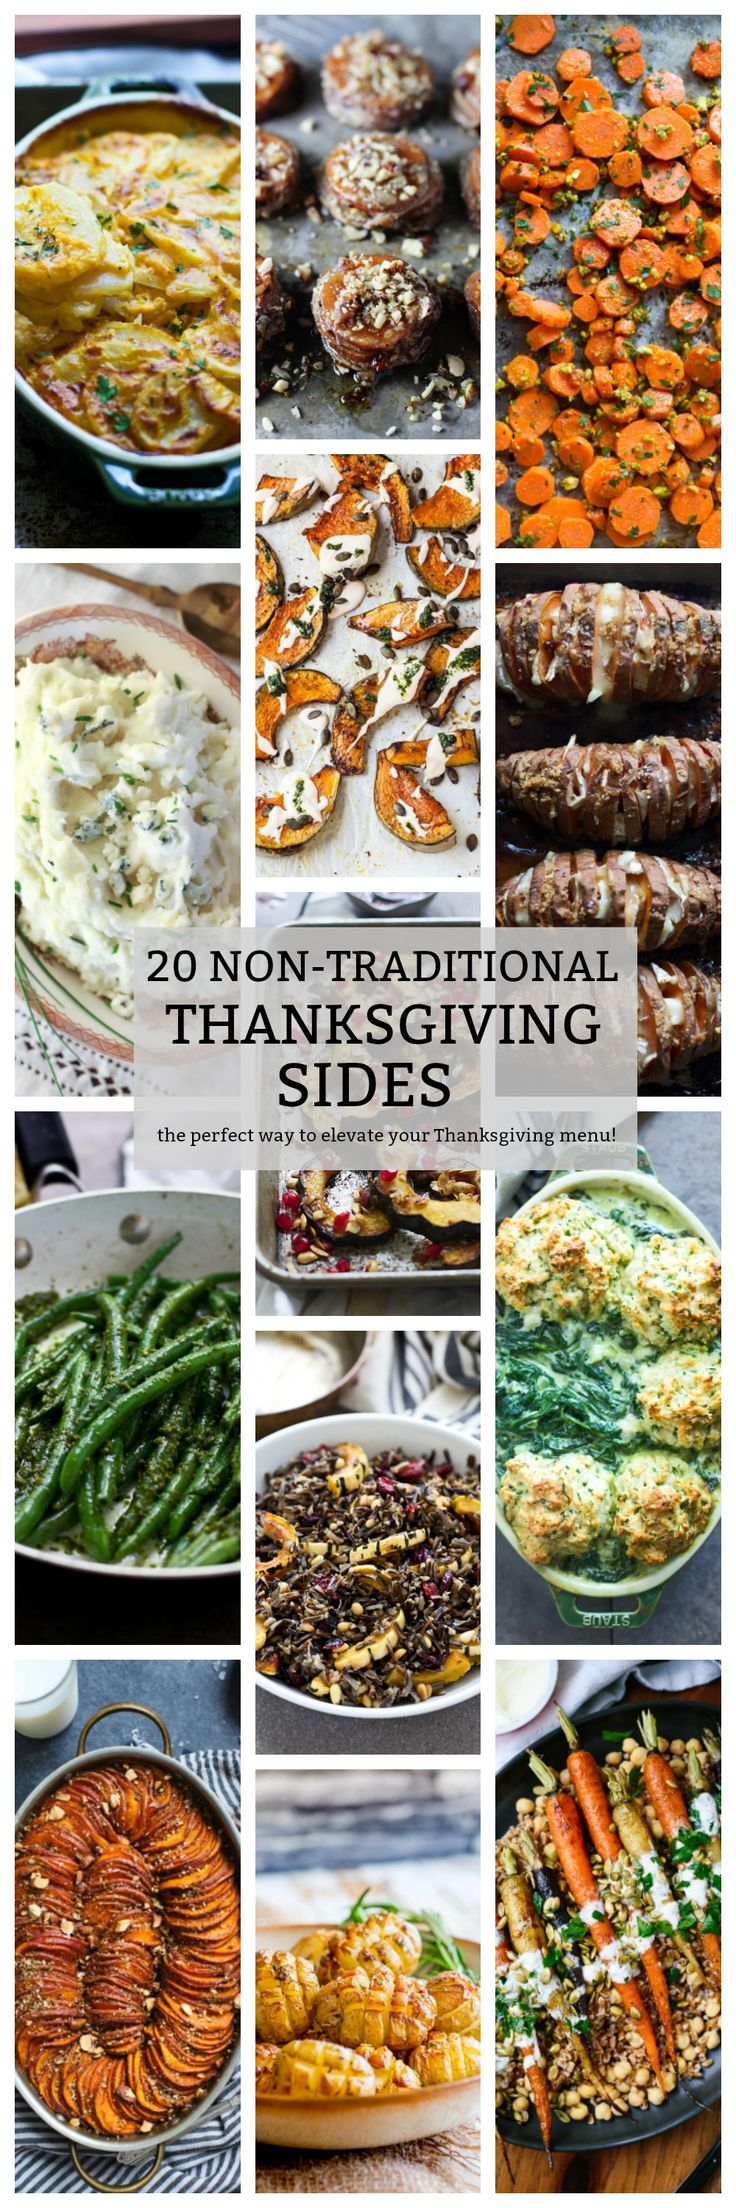 20 Non-Traditional Thanksgiving Sides - Cooking for Keeps